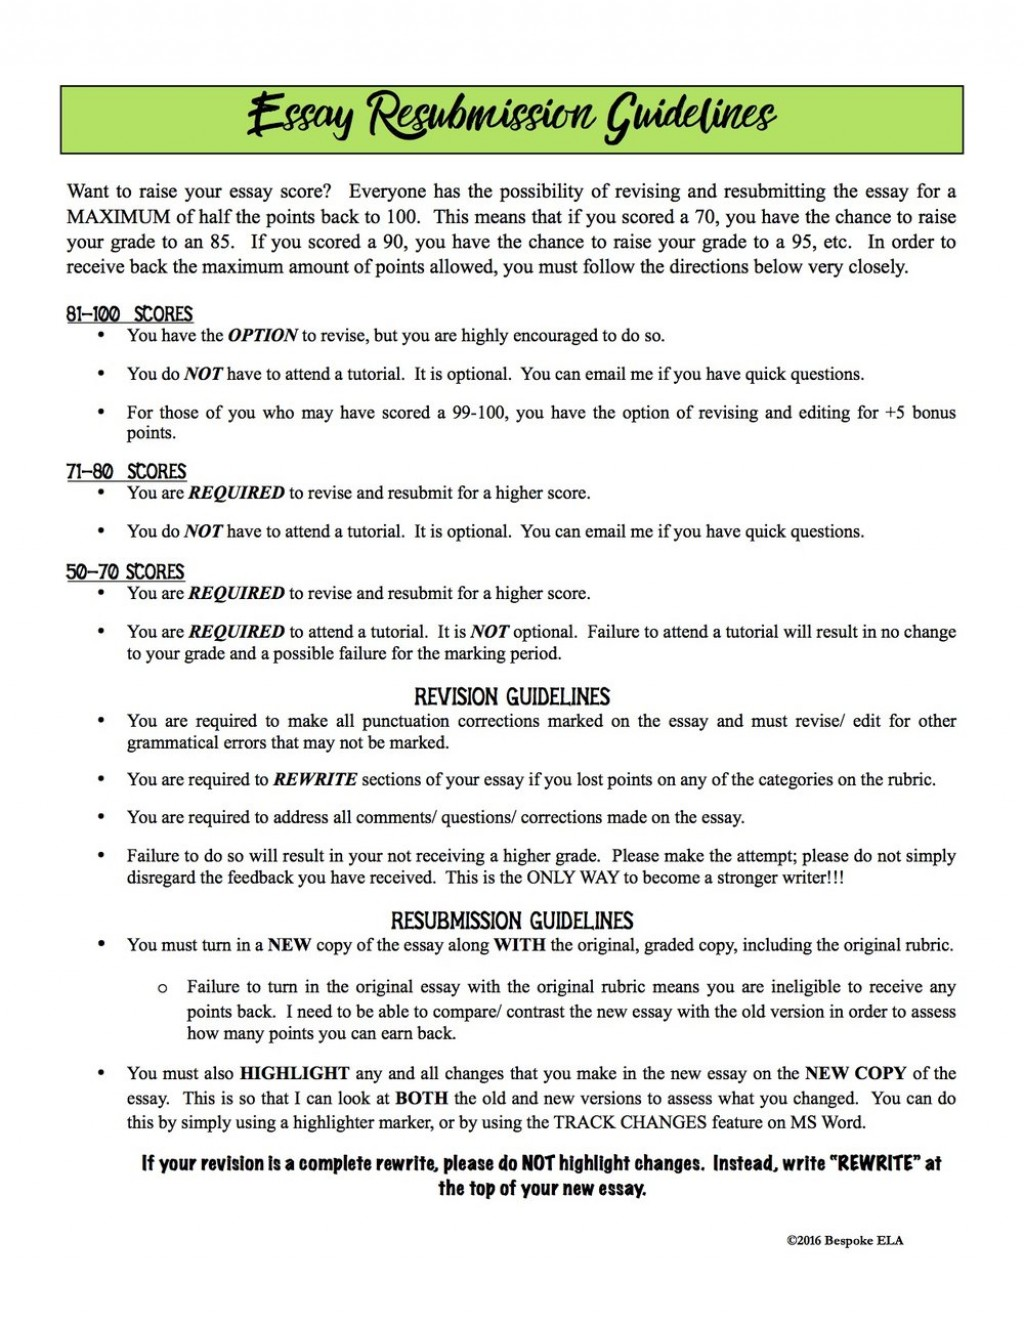 008 Research Paper 3399119928 Webiste That Will Grade Your Essay For High School Biology Outstanding Guidelines Large